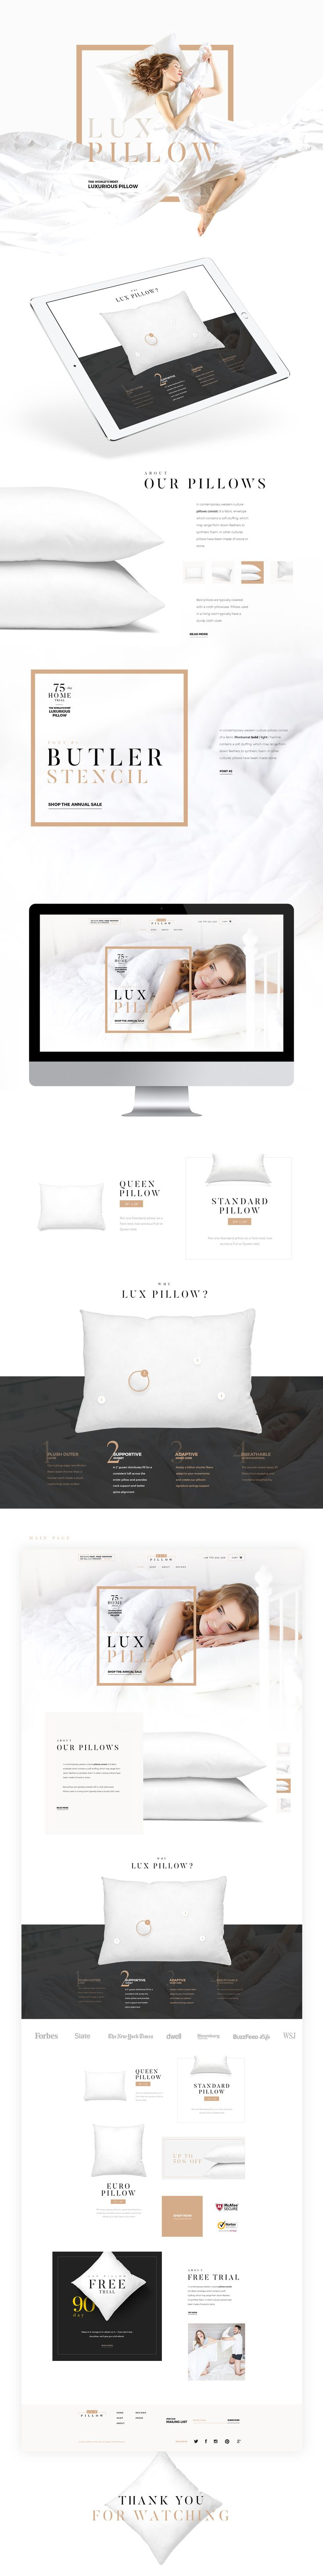 Luxury pillow online shop. Design for sale.